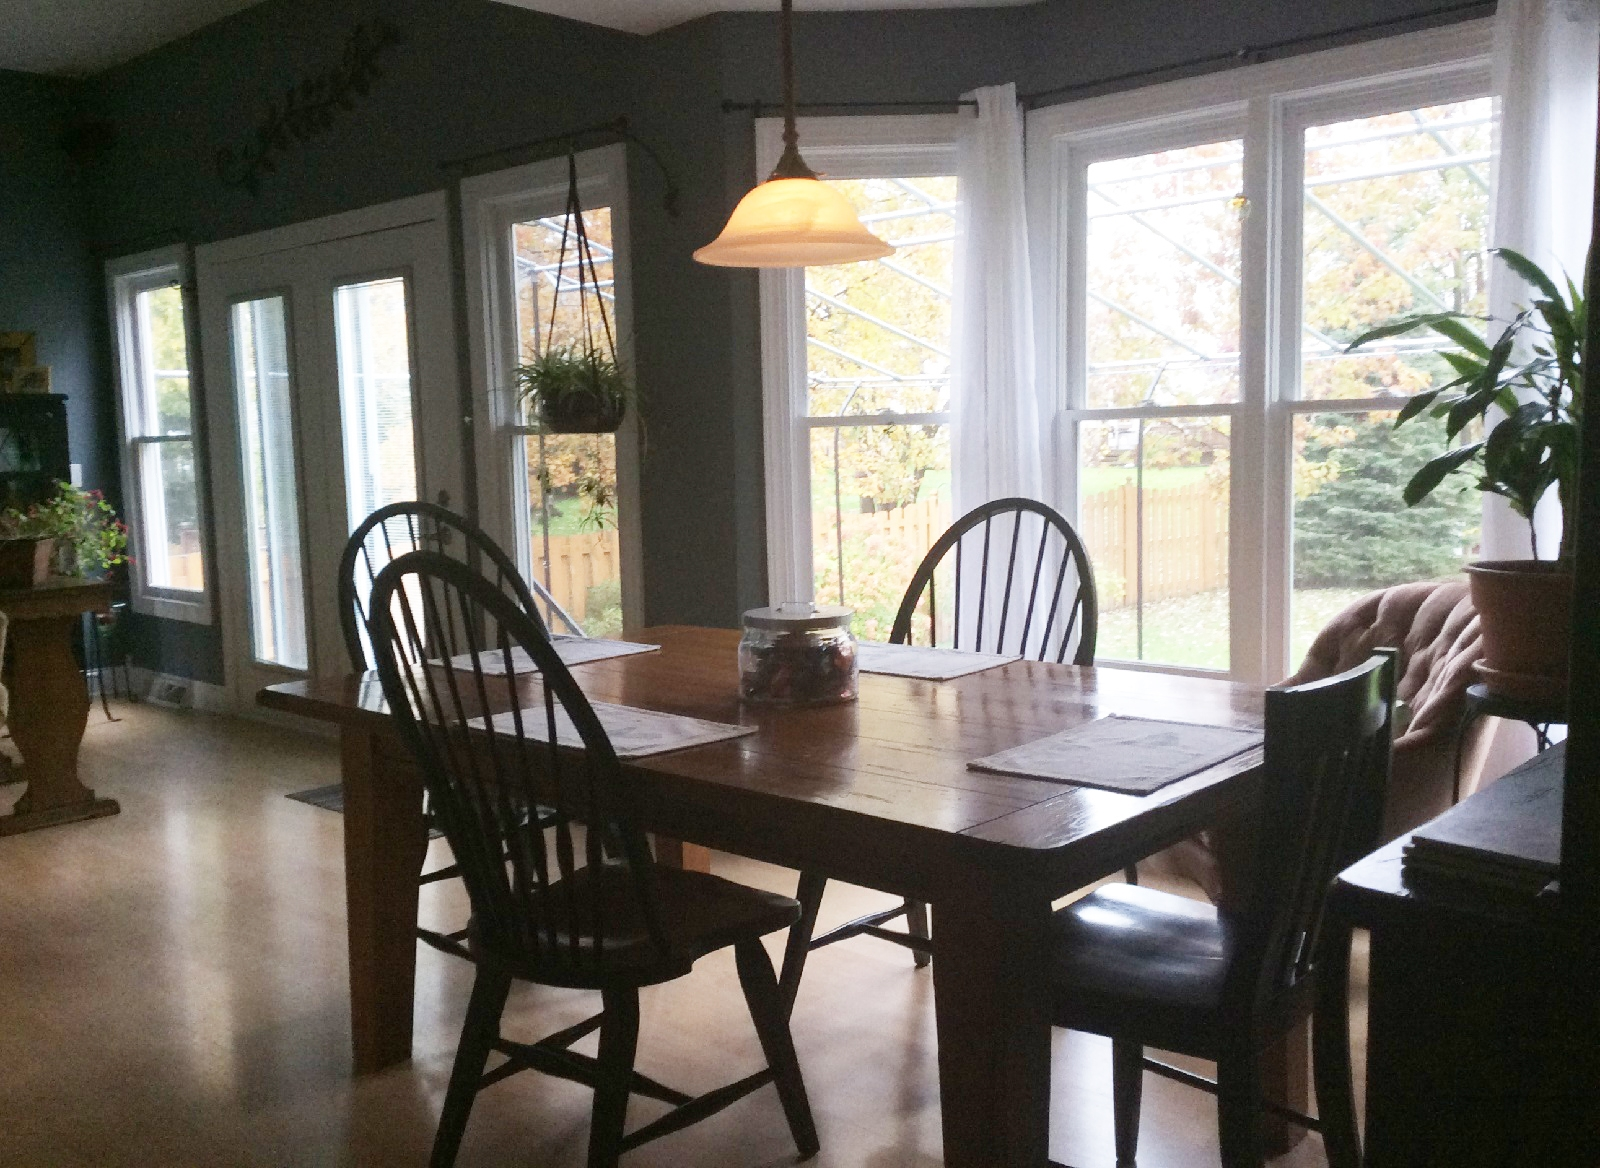 Another view of the dining room, which is furnished with a farmhouse-style table.